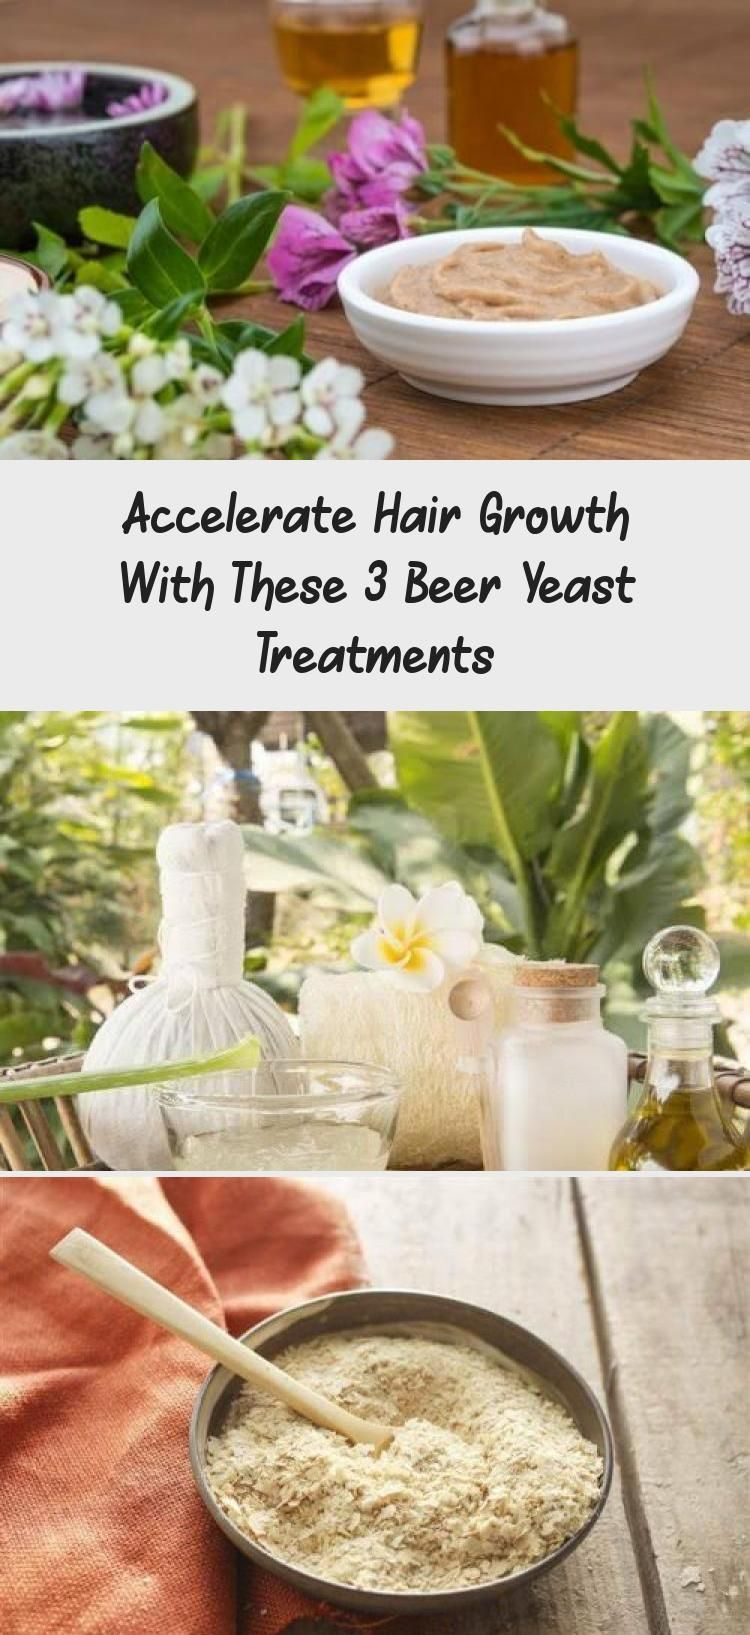 Supplement for Hair Growth} and Accelerate Hair Growth With These 3 Beer Yeast Treatments #fasterhairgrowth Accelerate Hair Growth with These 3 Beer Yeast Treatments #hairgrowthChart #ScalpDetoxhairgrowth #hairgrowthFaster #hairgrowthAfterChemo #AppleCiderVinegarhairgrowth